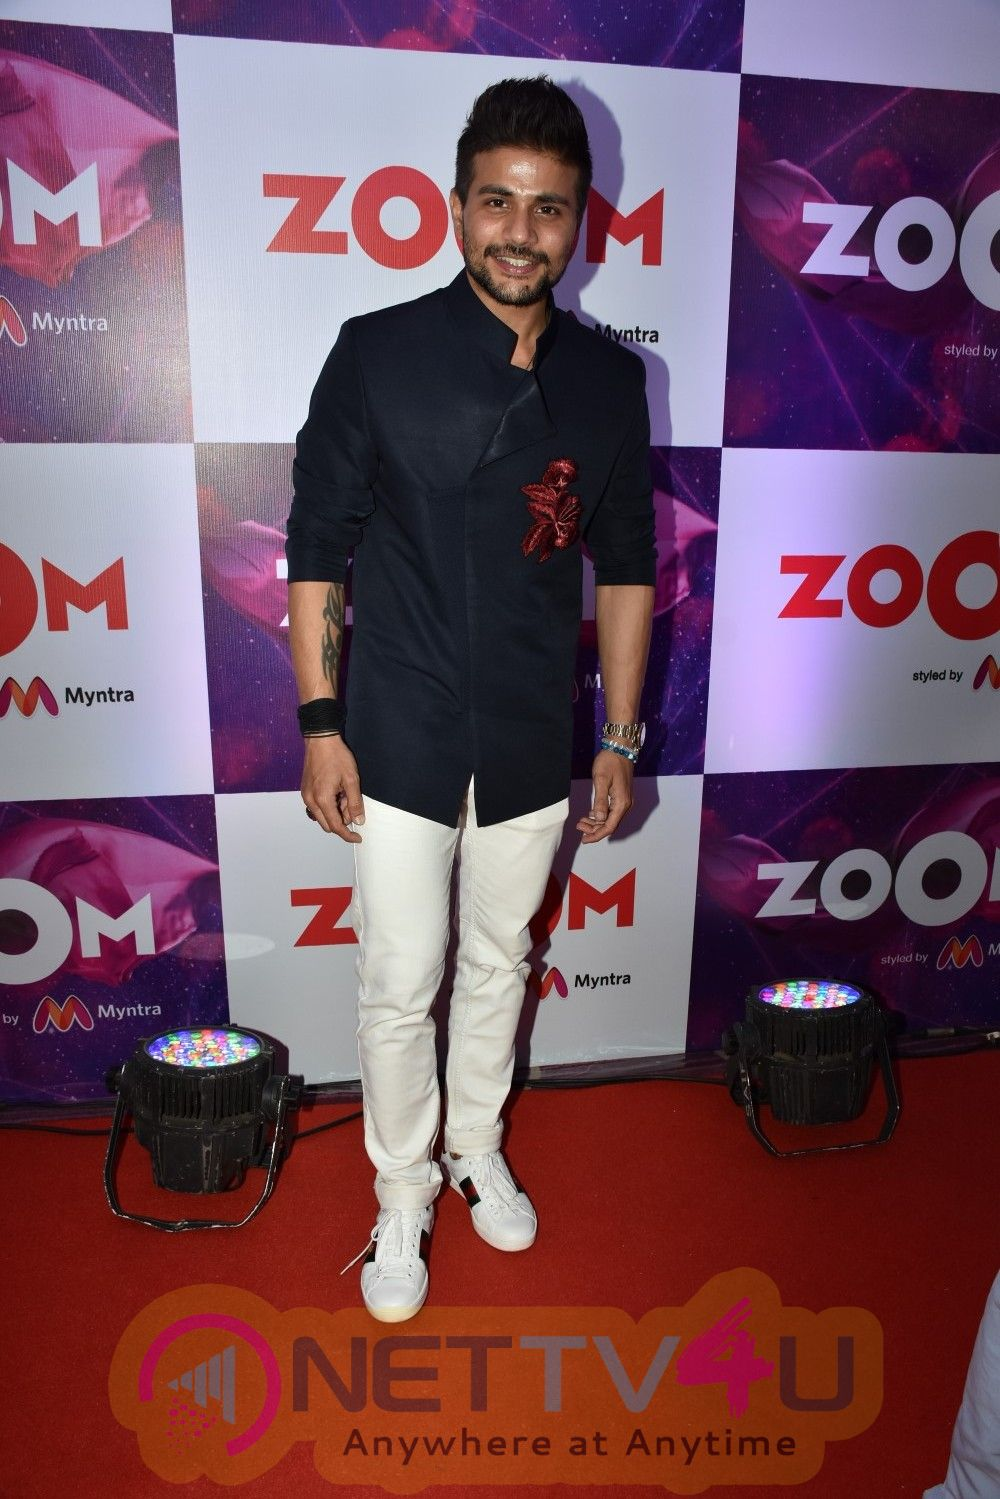 Zoom Styles By Myntra Party